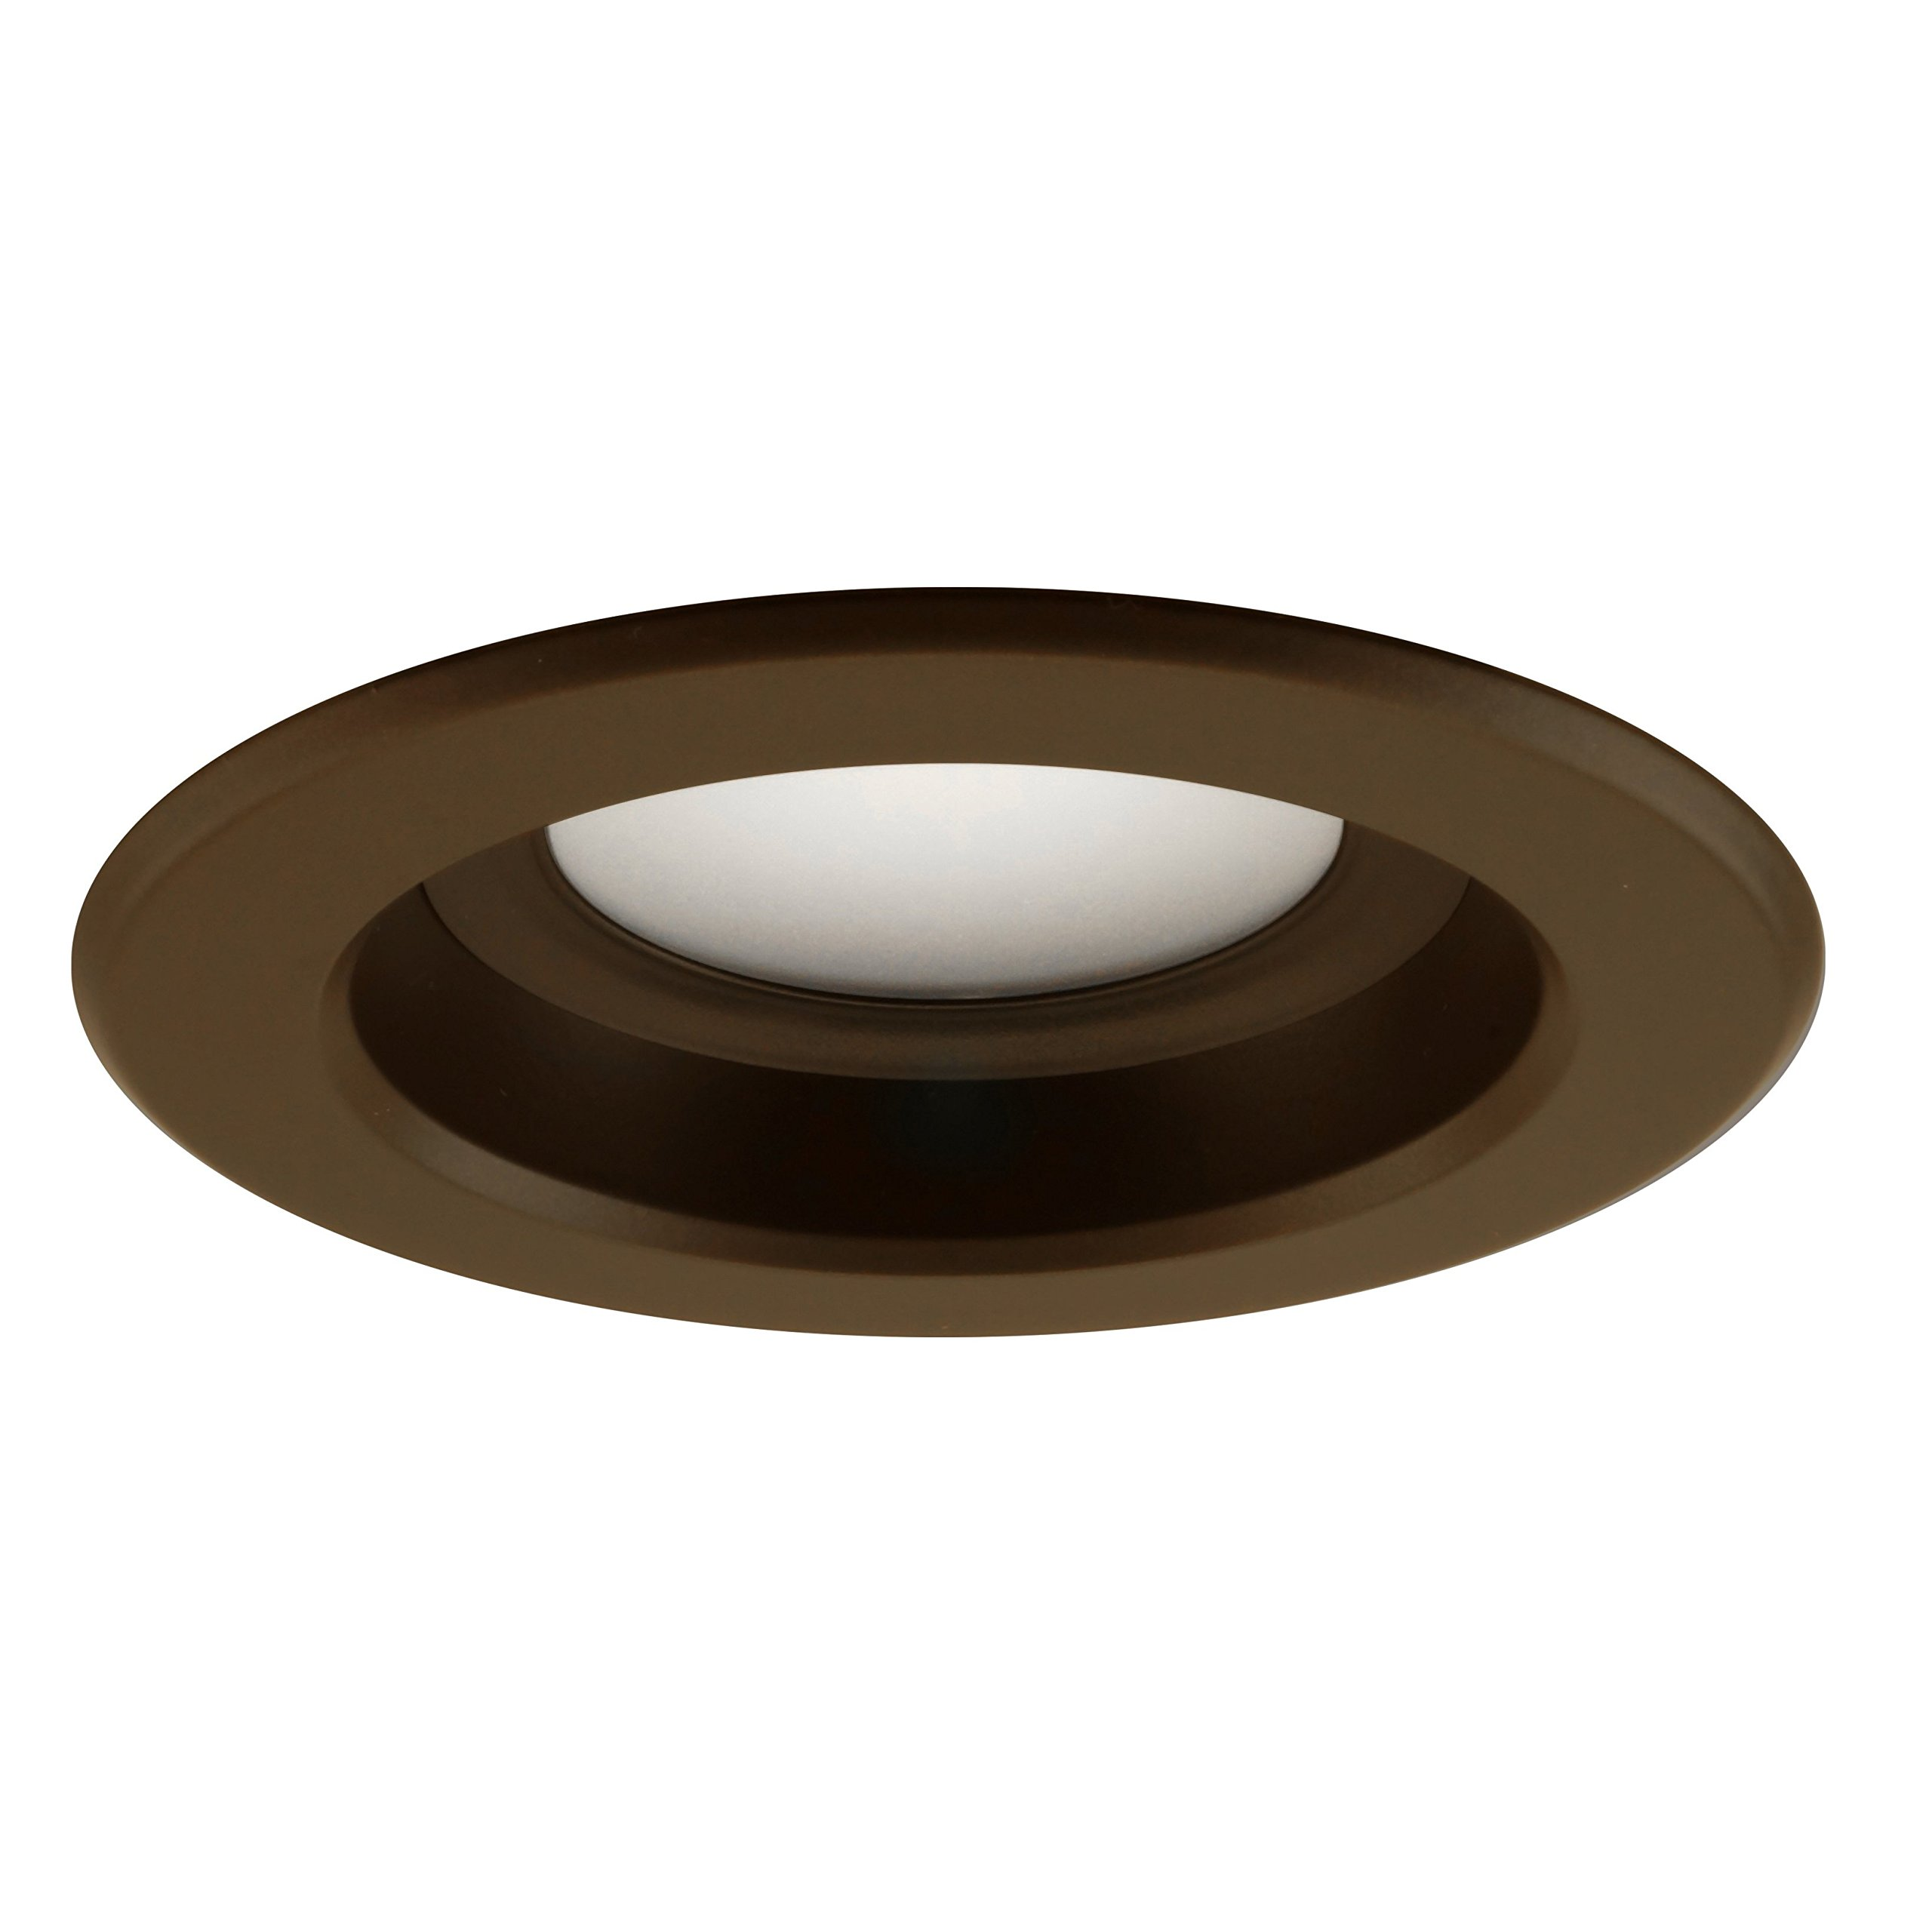 NICOR Lighting 4-Inch Dimmable 3000K LED Remodel Downlight Retrofit Kit for Recessed Housings, Oil-Rubbed Bronze Trim (DLR4-3006-120-3K-OB) by NICOR Lighting